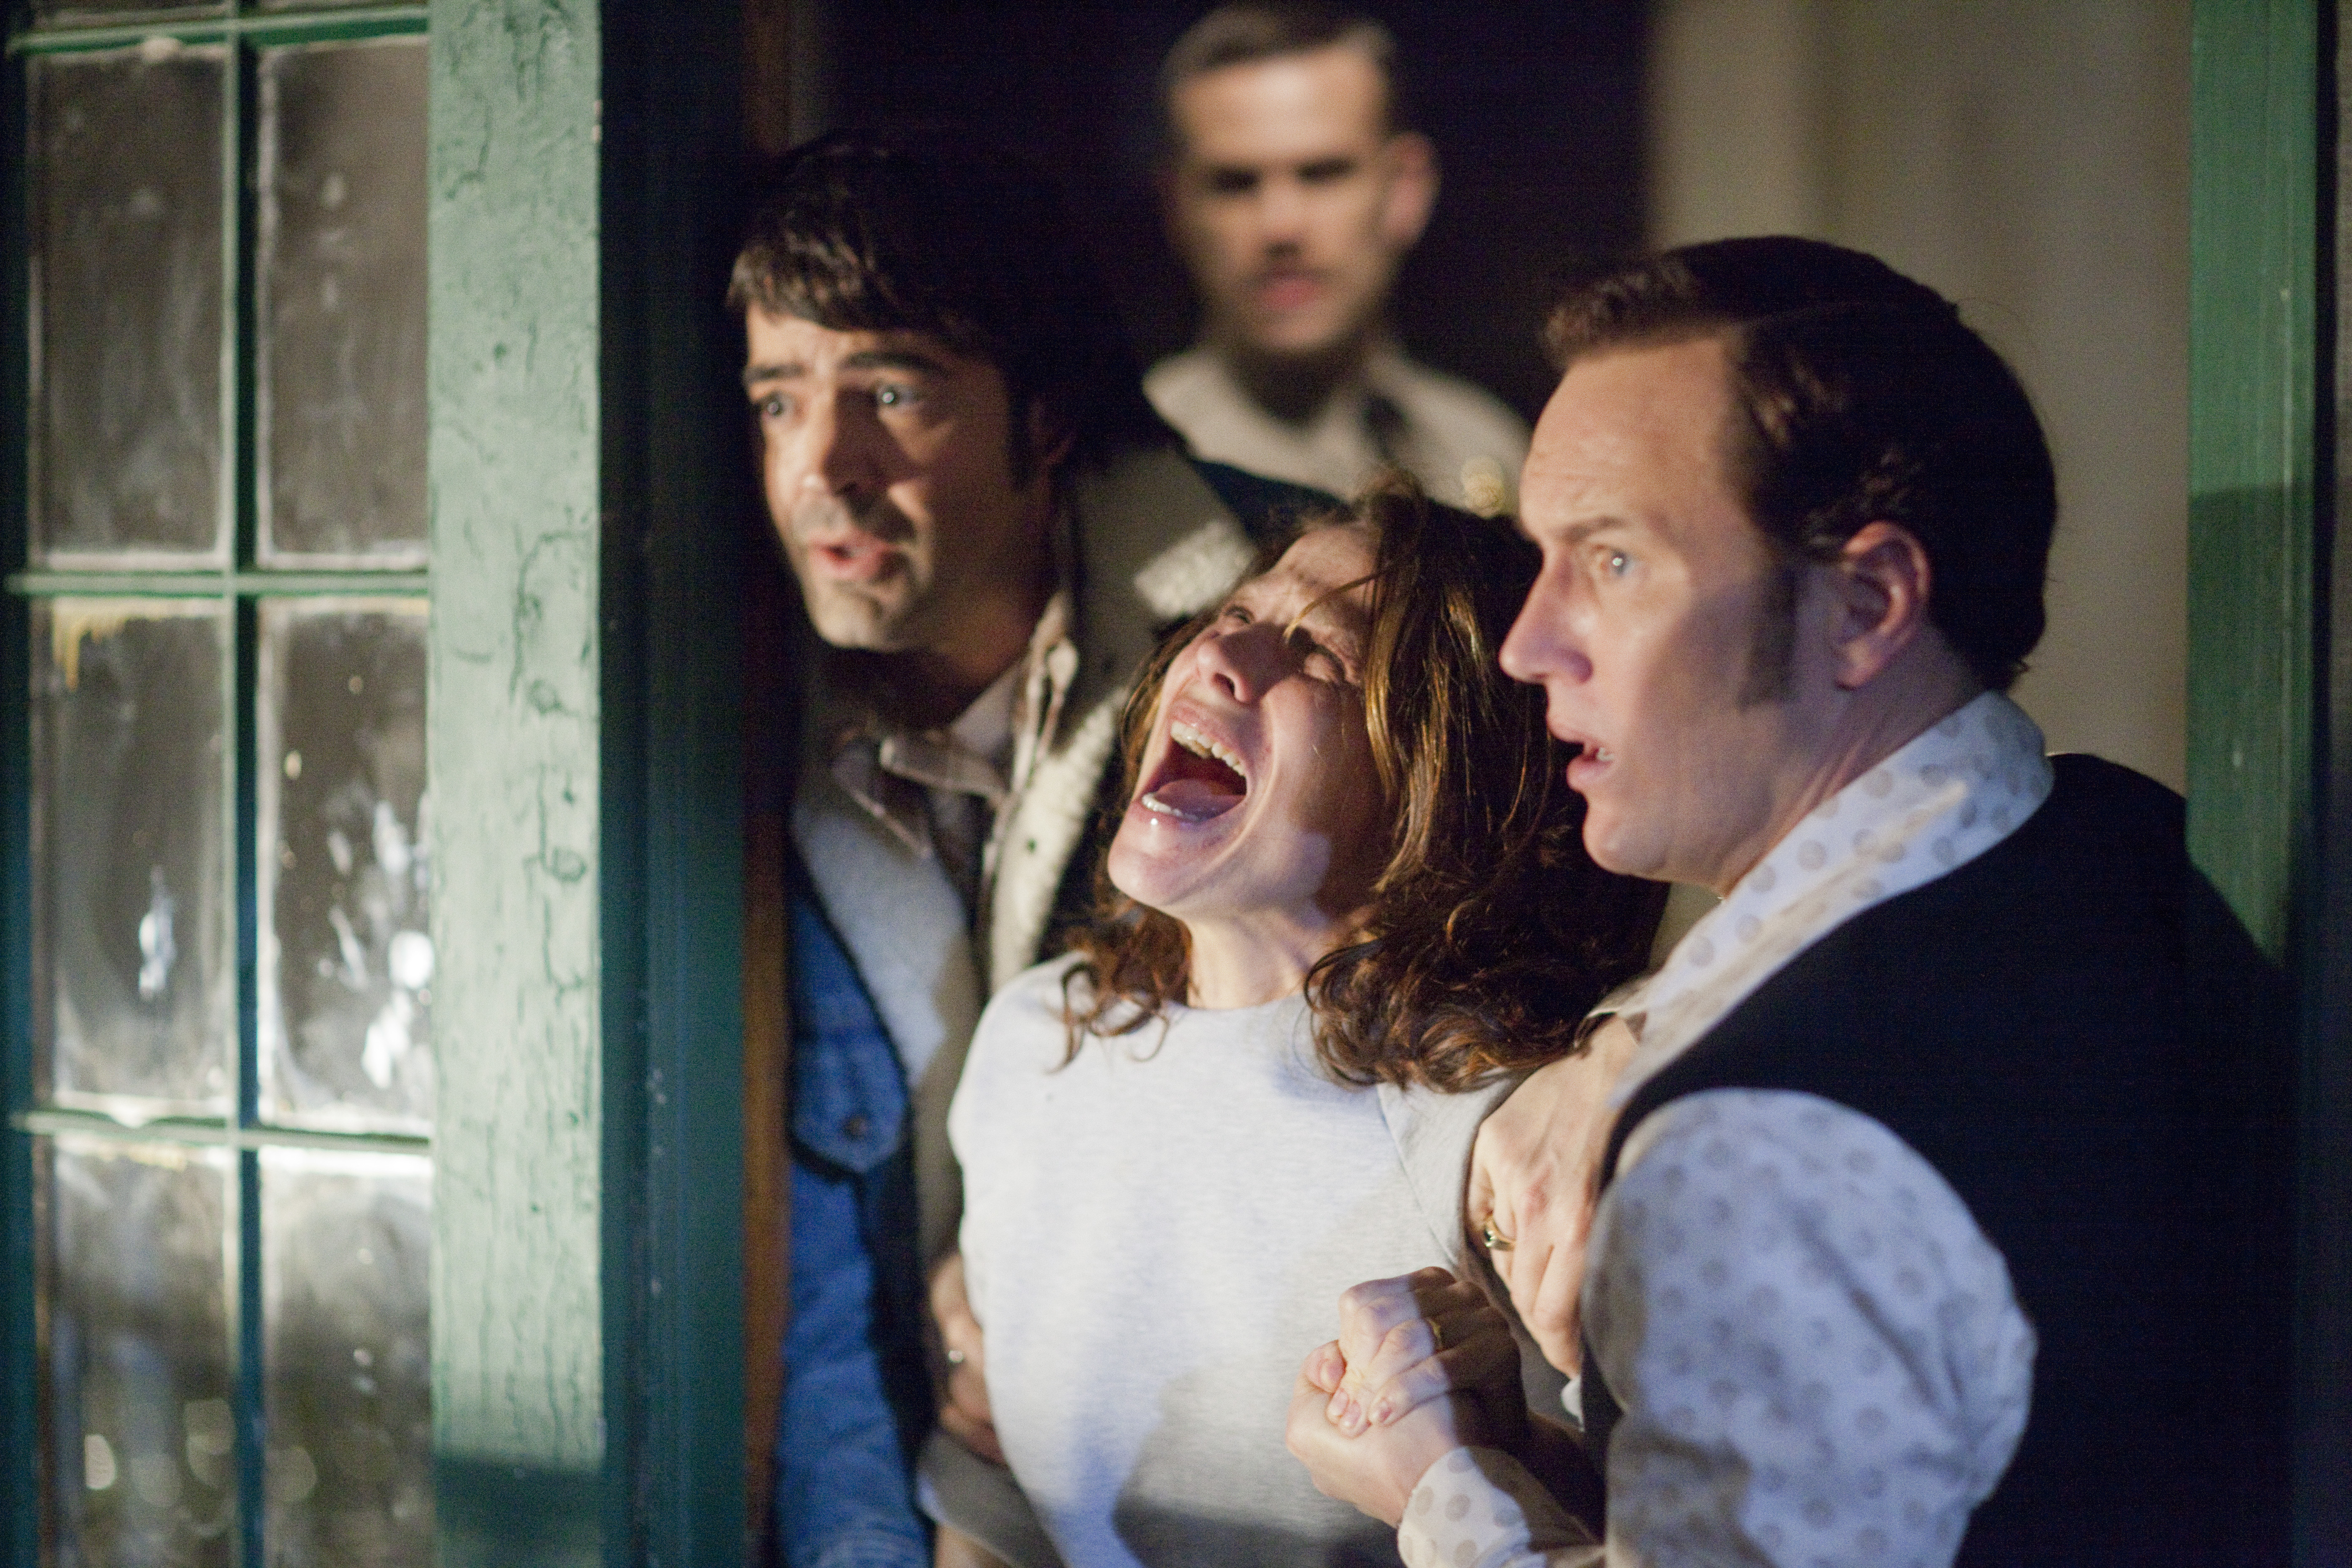 CJD 04665 New Stills From The Conjuring Released